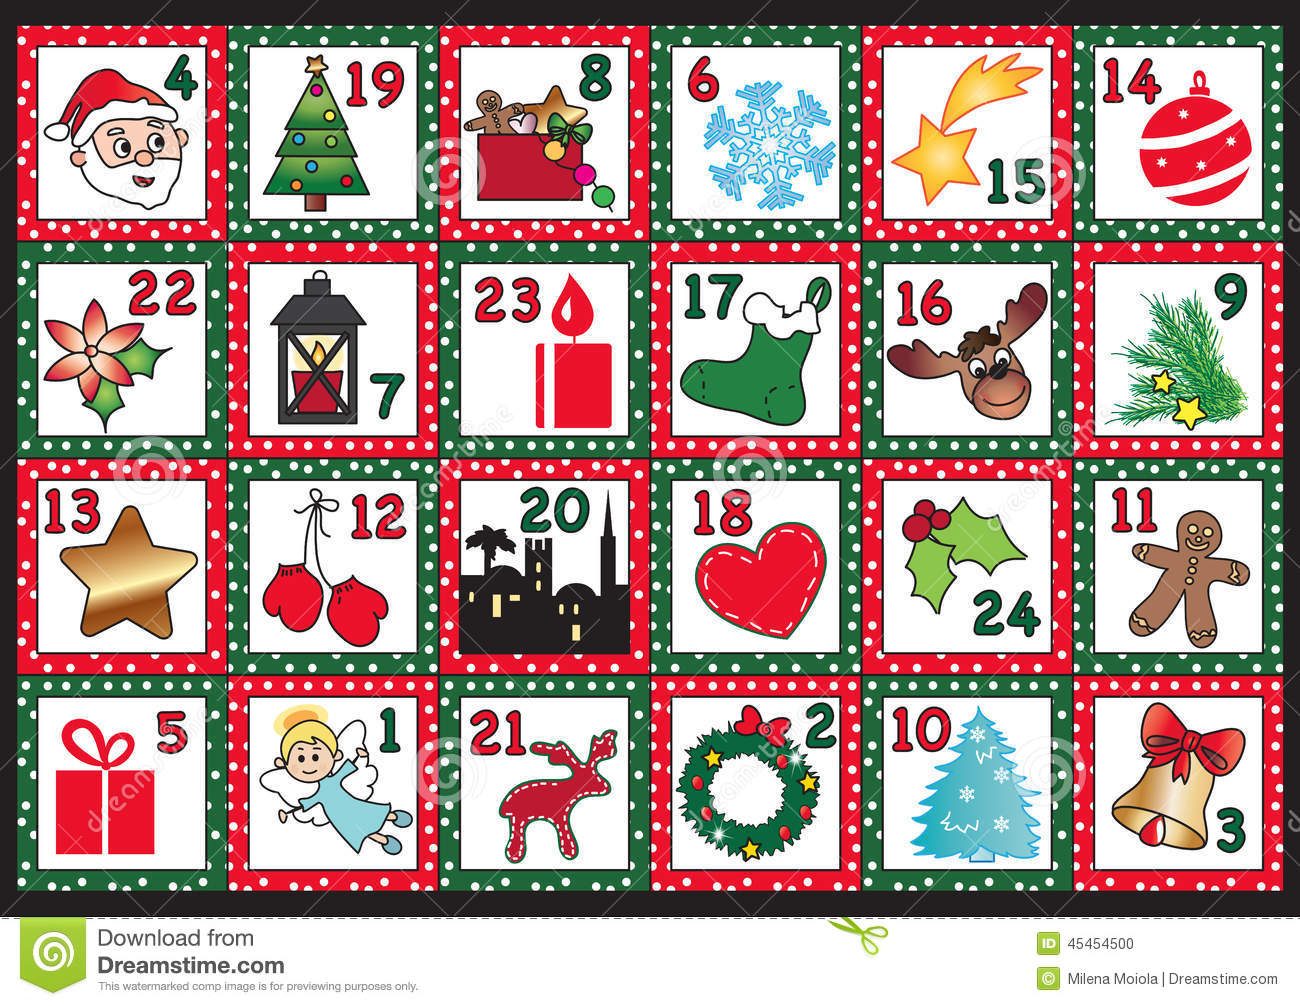 Advent calendar clipart image freeuse stock Free christmas advent calendar clipart - ClipartFest image freeuse stock